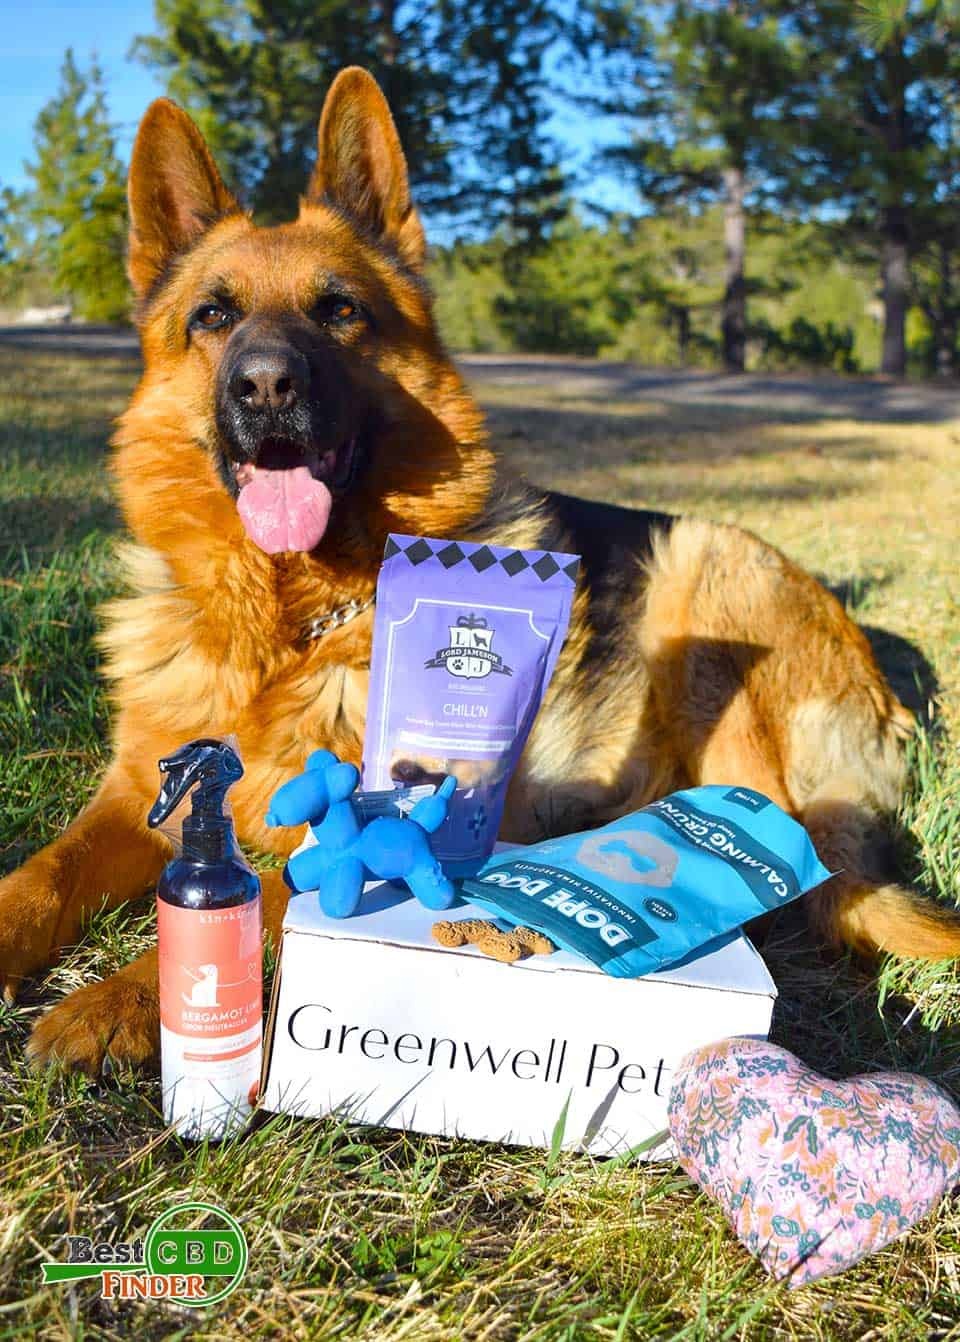 Greenwell Pet Box Review: Unboxed